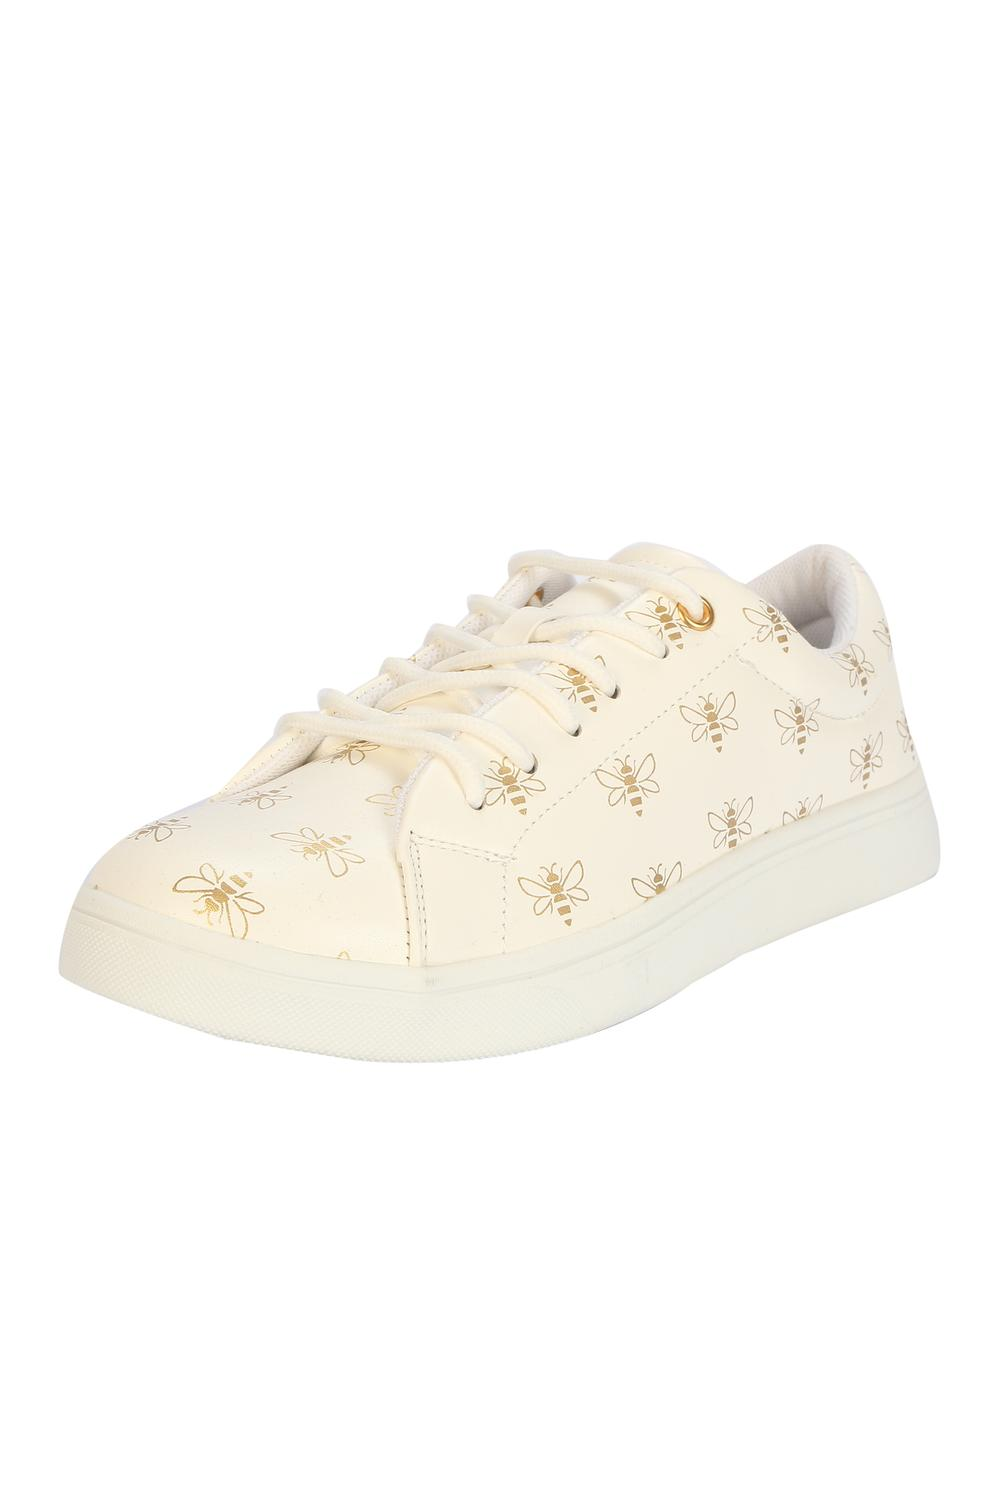 allen solly white shoes